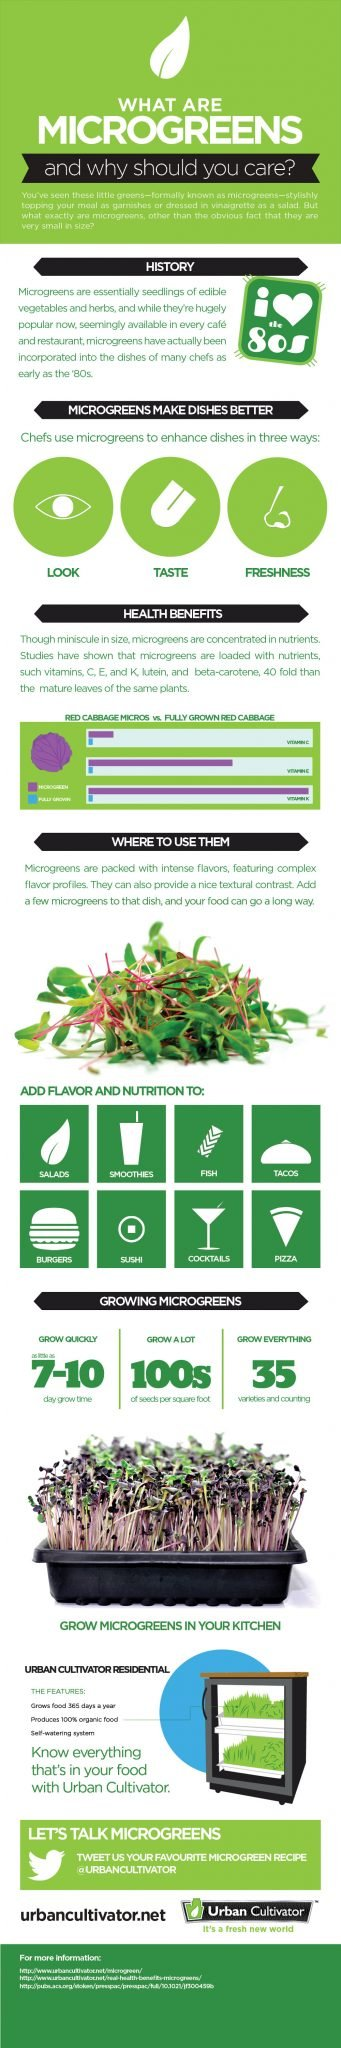 Get more microgreens into your life...